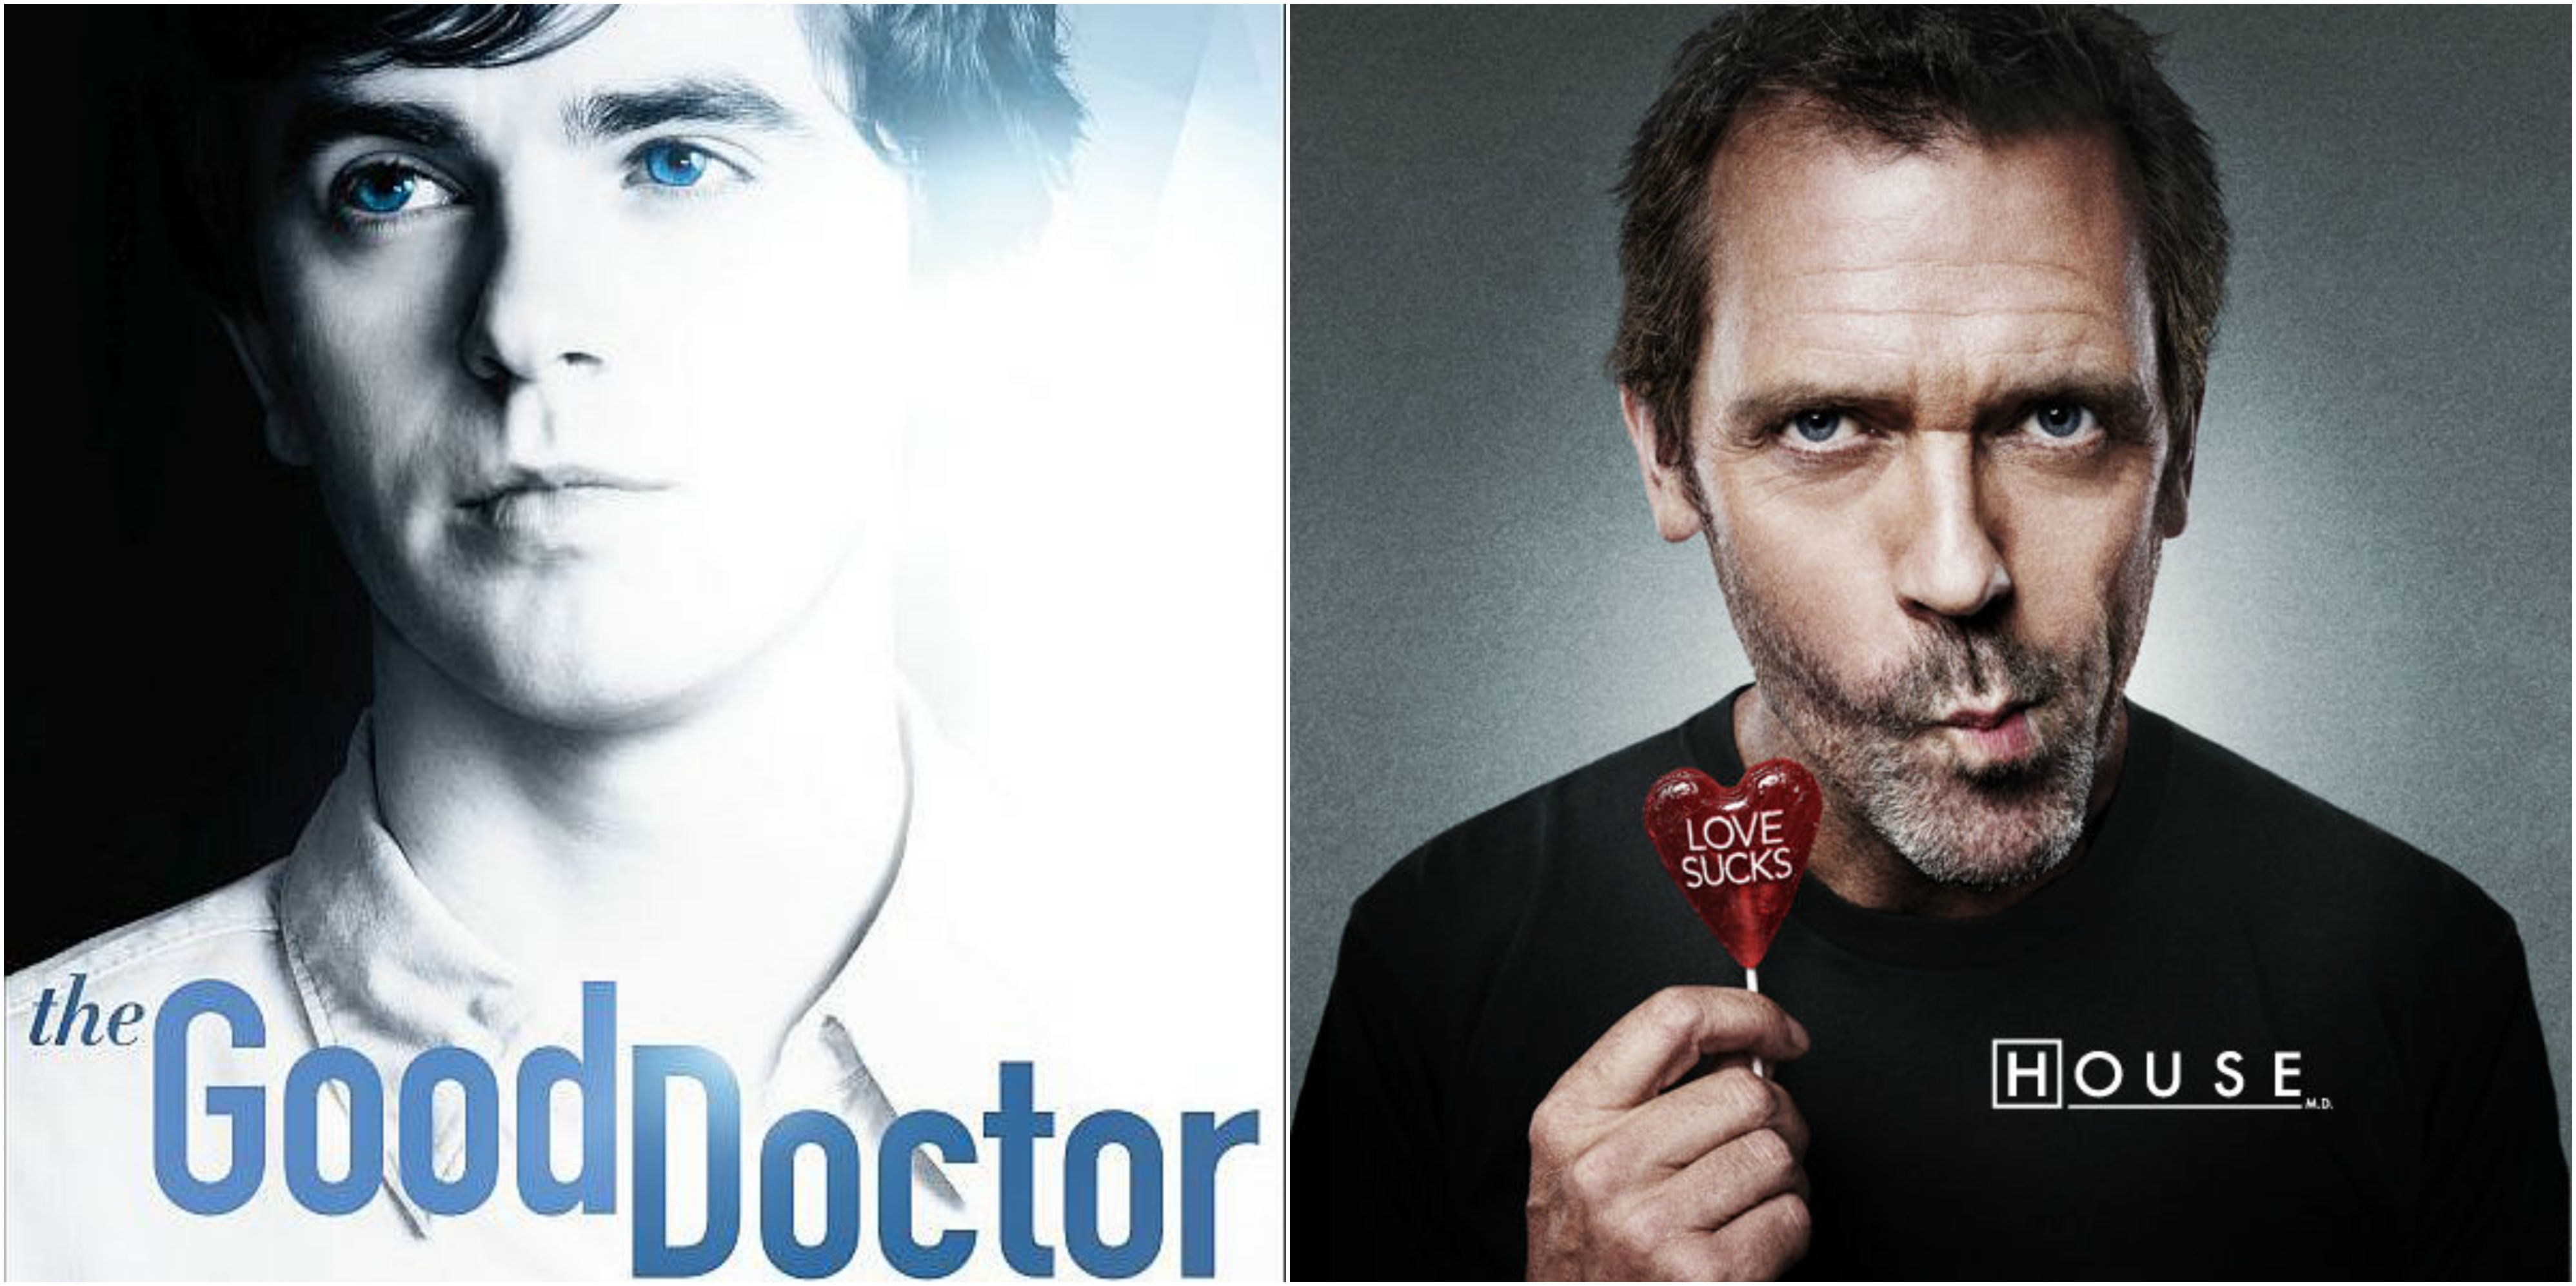 The Good Doctor Vs House MD